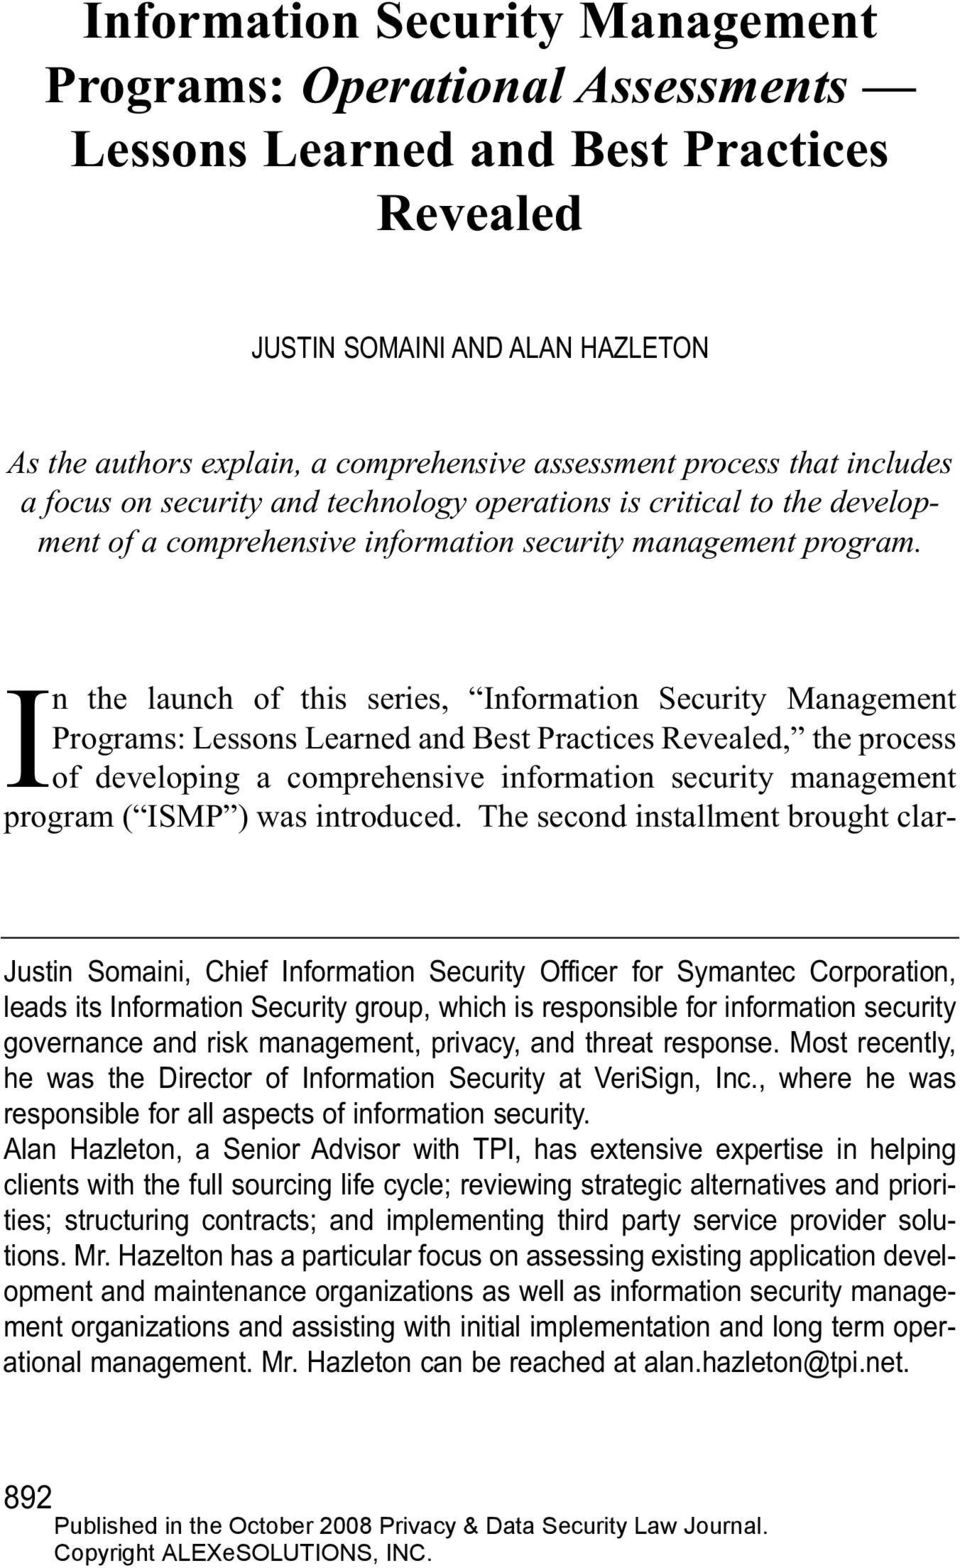 In the launch of this series, Information Security Management Programs: Lessons Learned and Best Practices Revealed, the process of developing a comprehensive information security management program